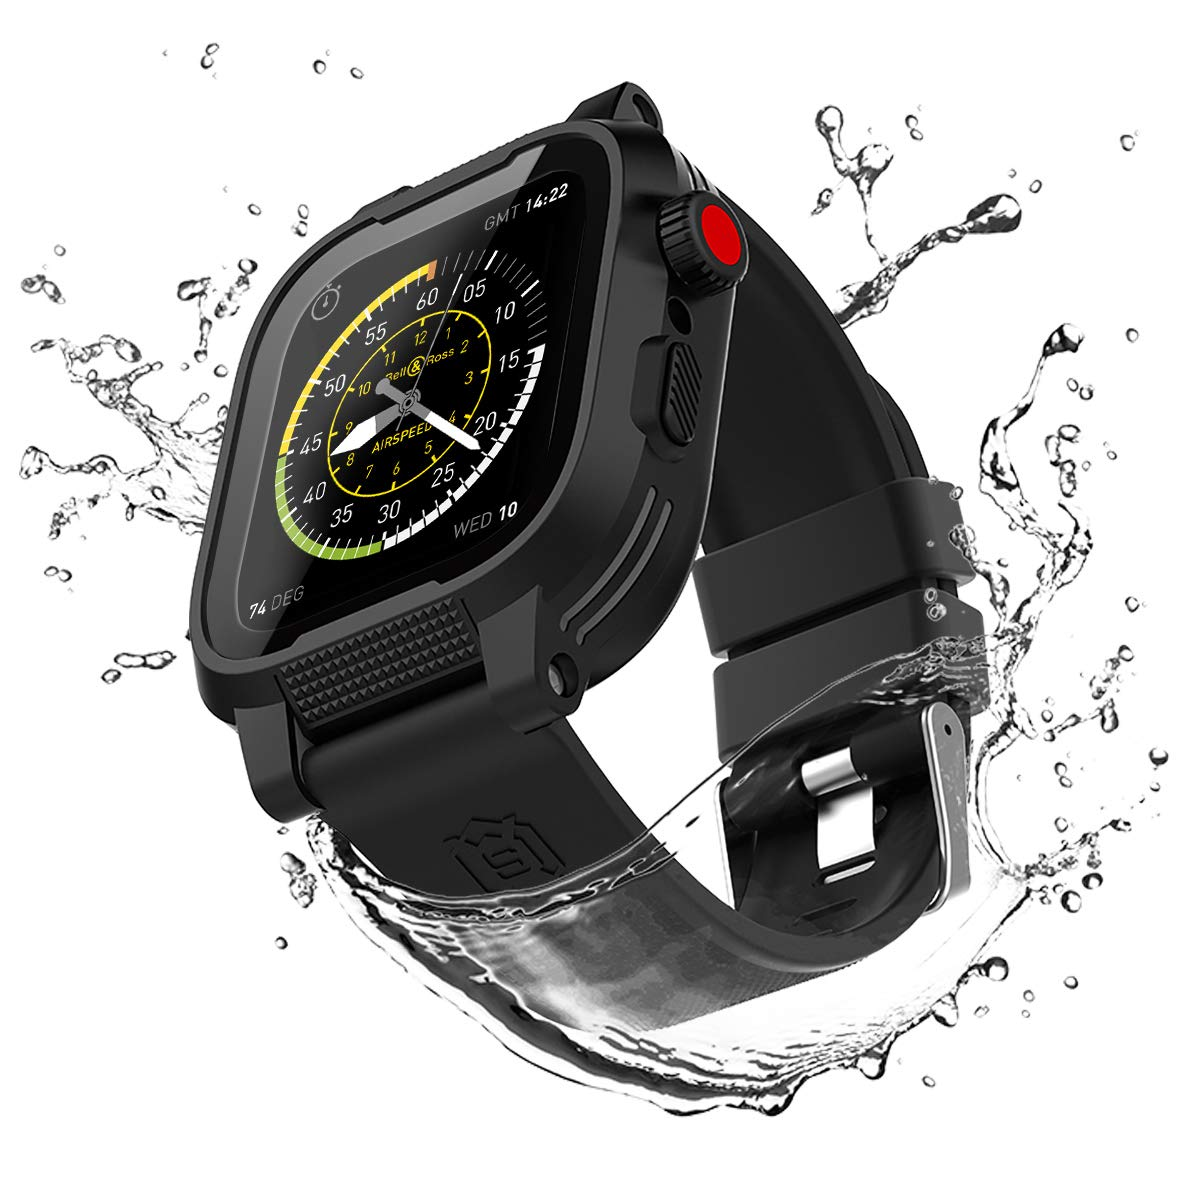 best service 4e585 53cf4 Waterproof Case for 44mm Apple Watch Series 4 Heavy Duty Shockproof Impact  Resistant iWatch Sealed Protective Case with Premium Soft Silicone Watch ...